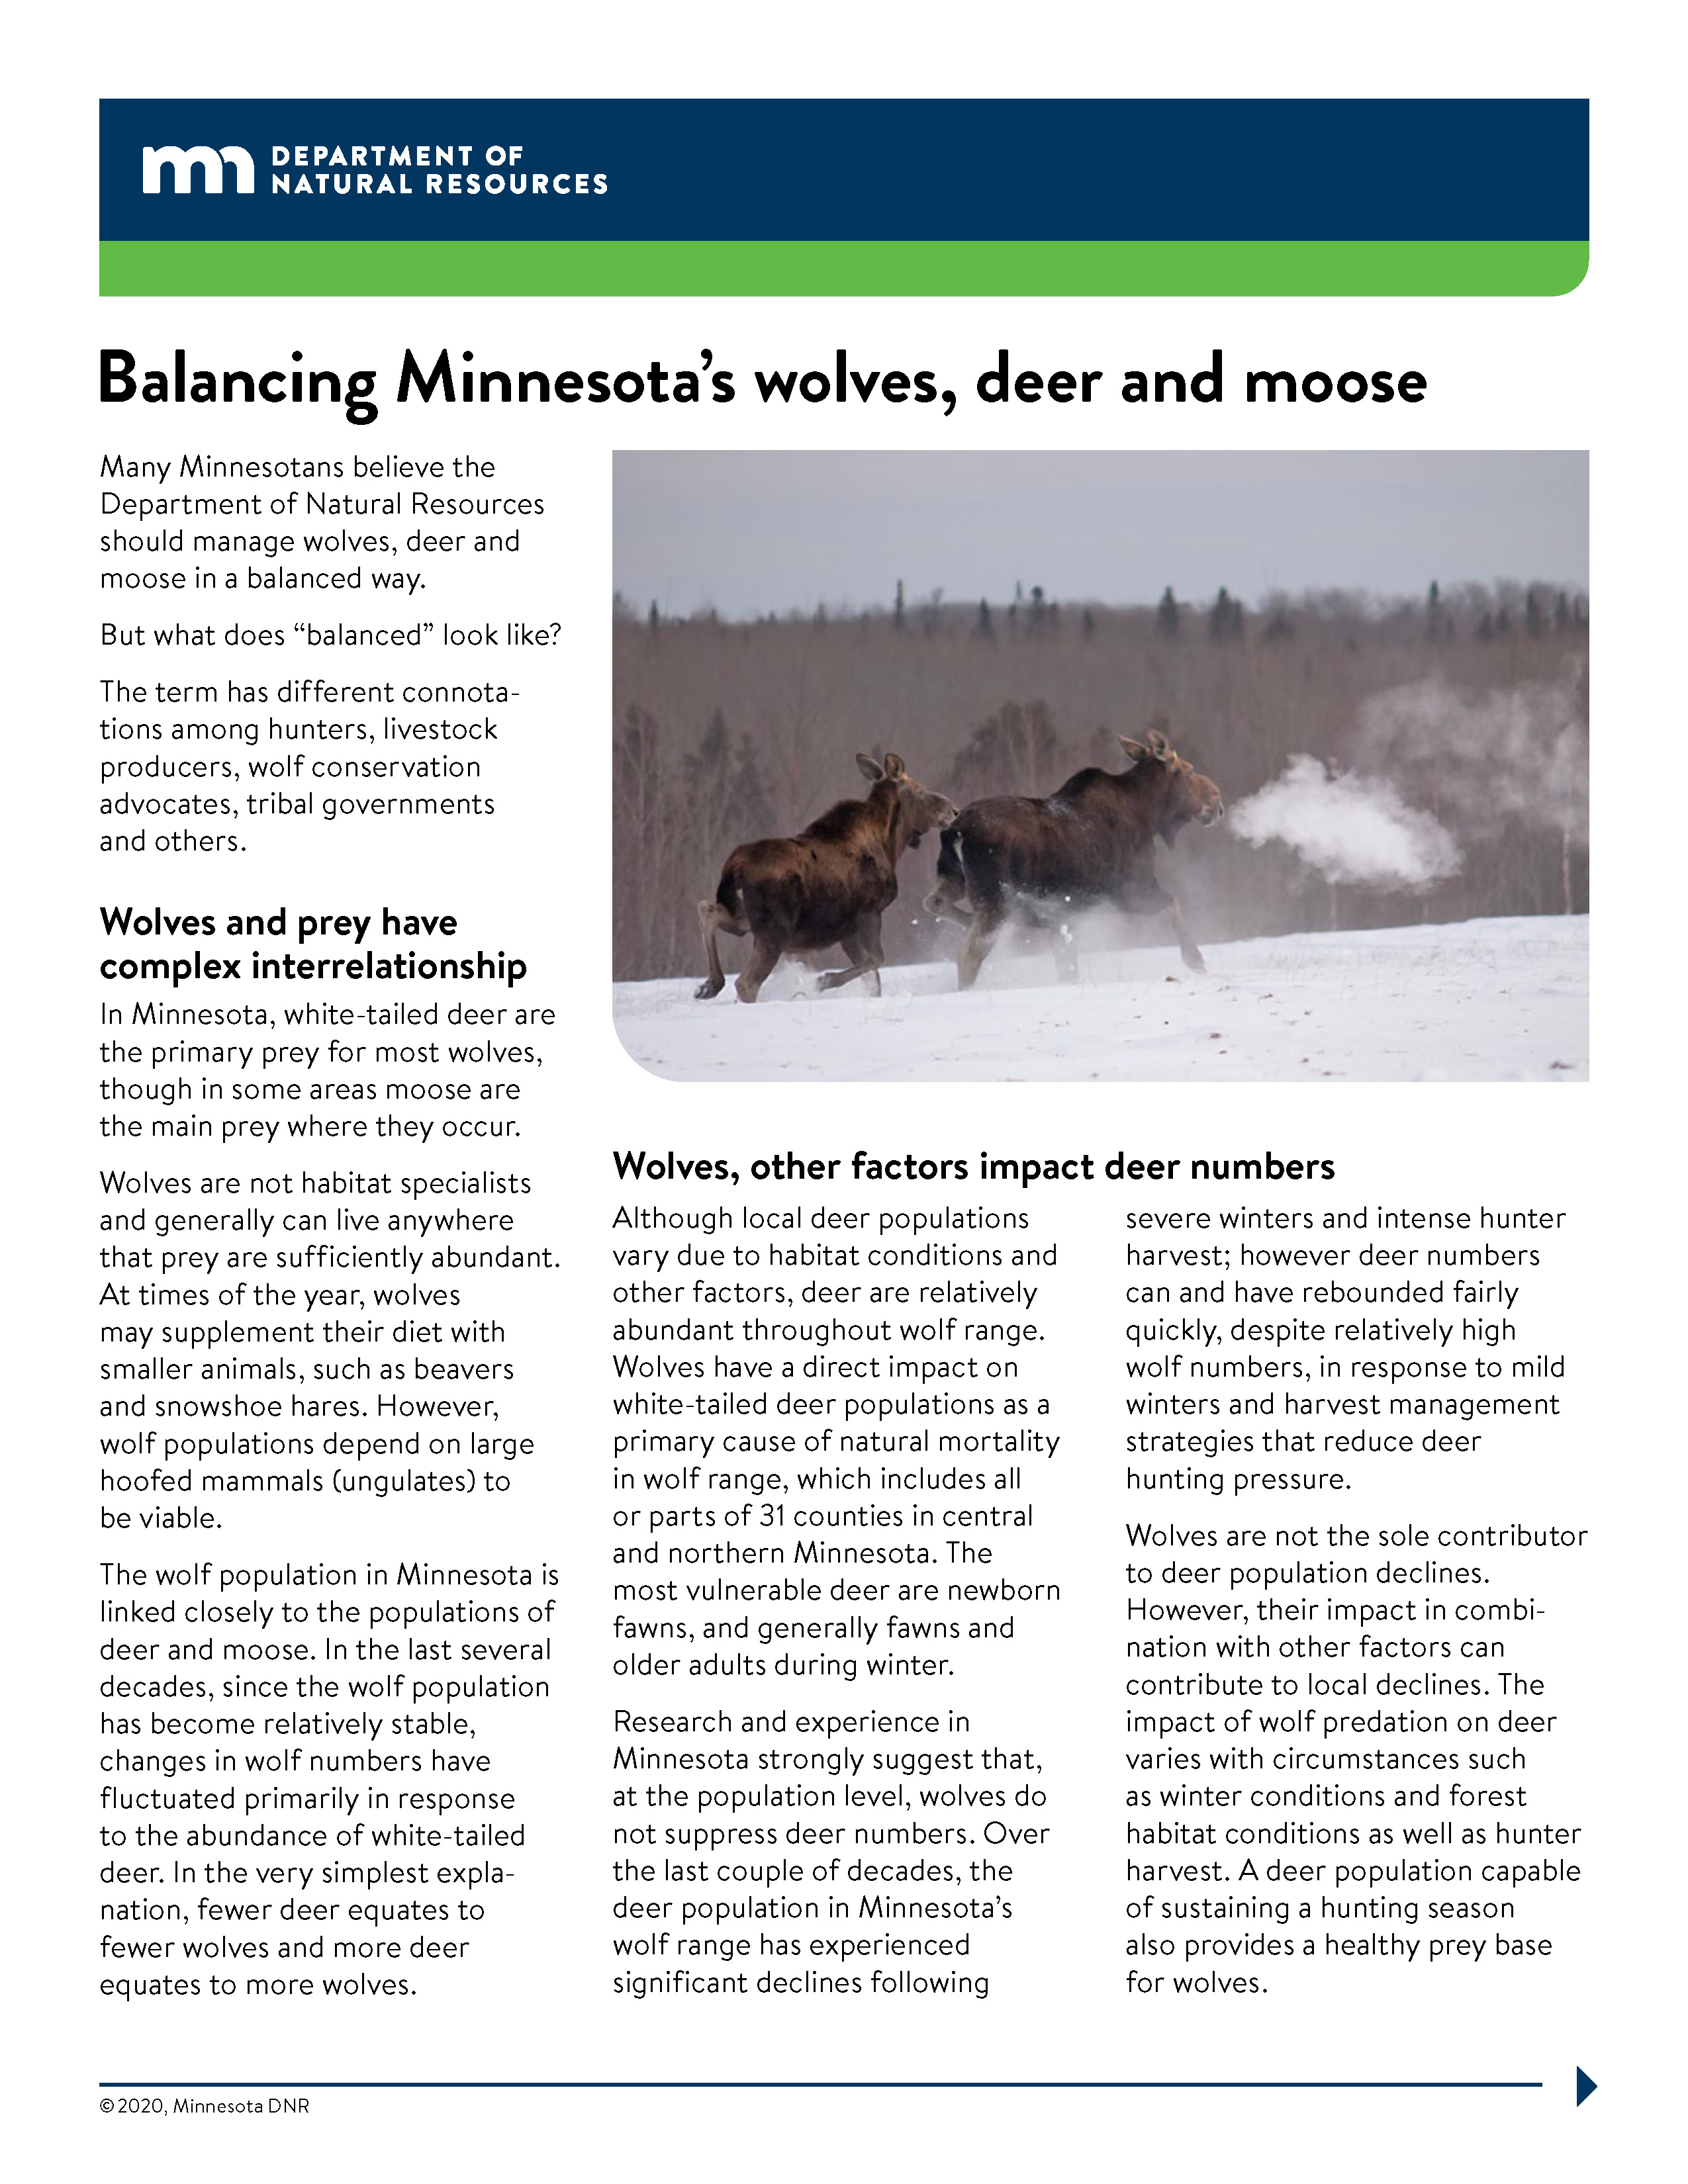 Image of the wolf, moose and deer fact sheet